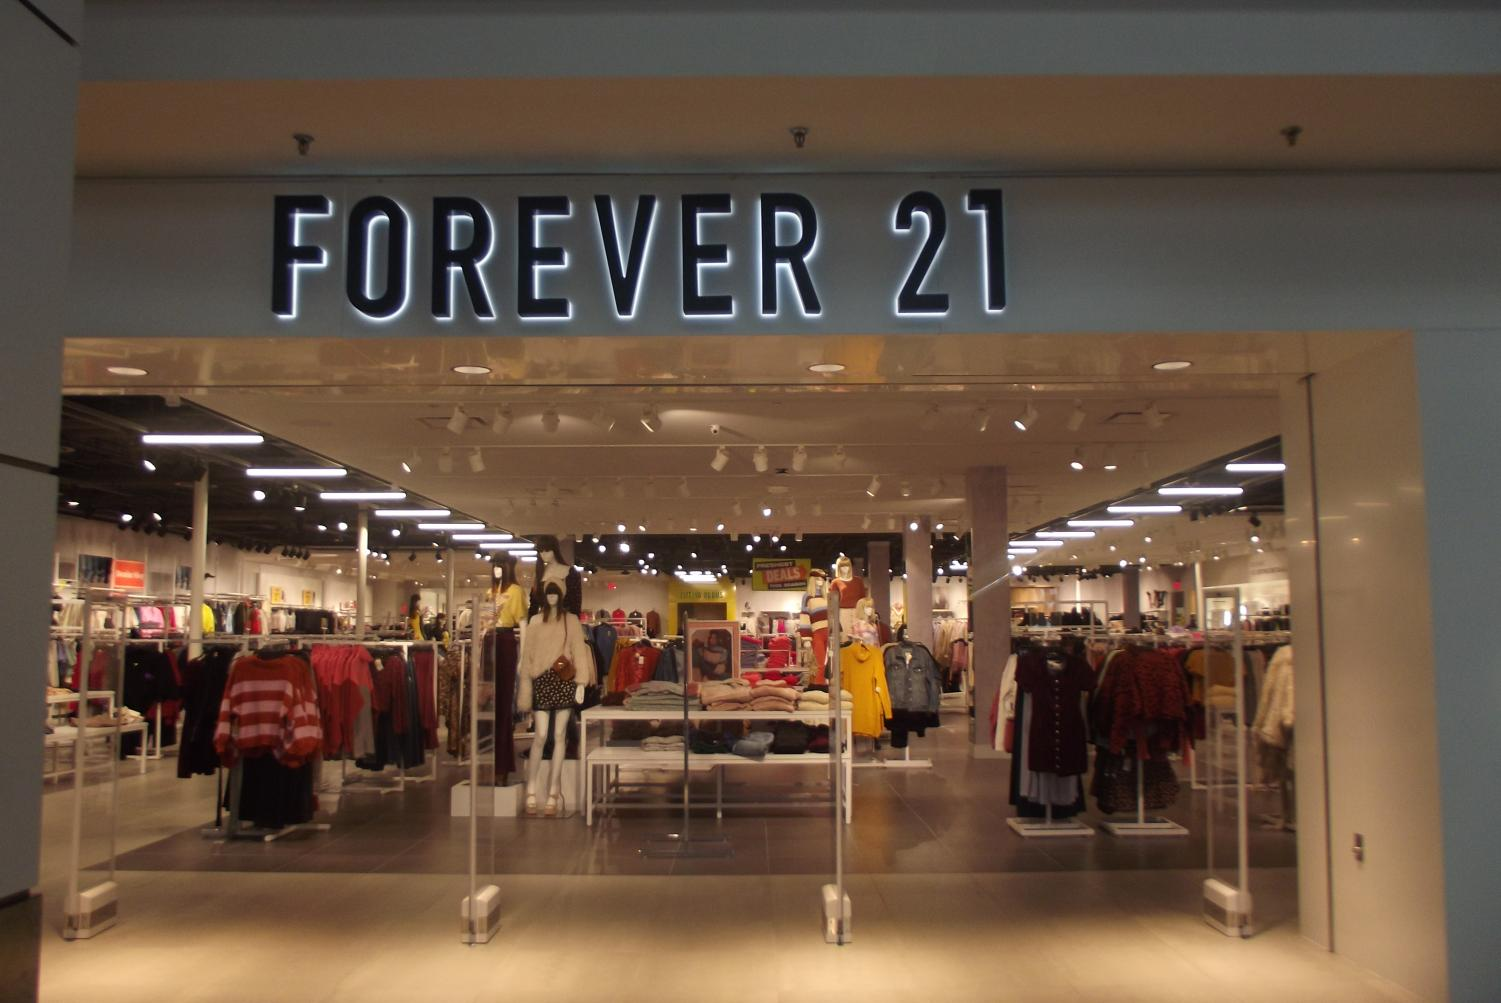 The outside of forever 21, a popular store to get good Black Friday deals. Photo courtesy Amanda Queiroz.